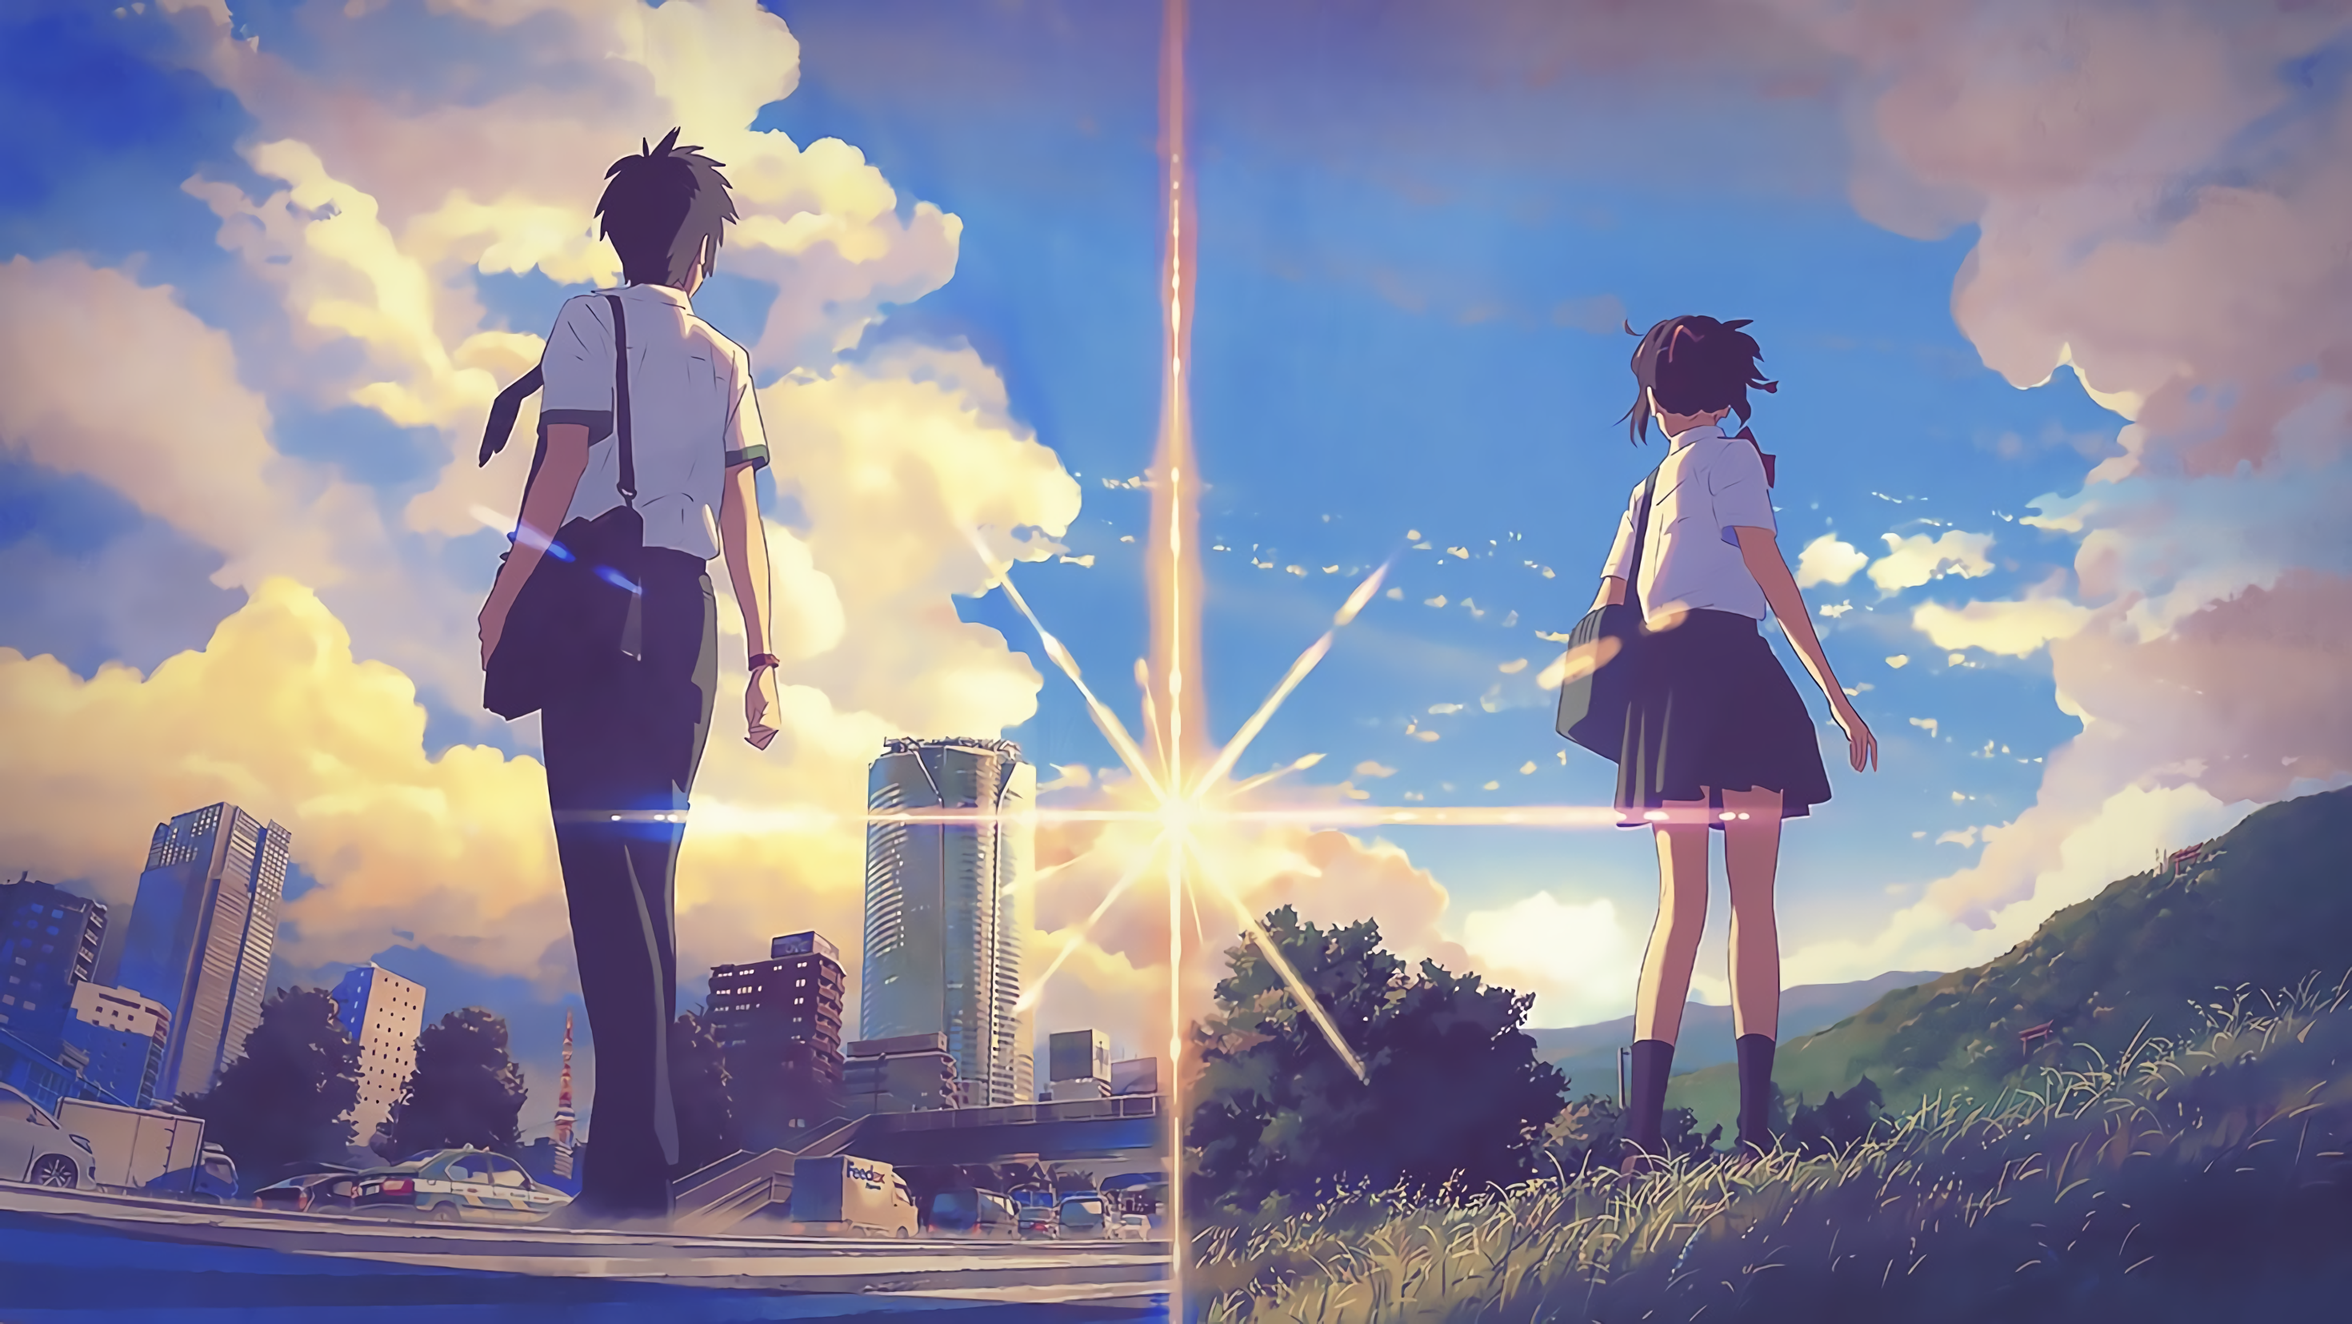 Jj Abrams Your Name , HD Wallpaper & Backgrounds